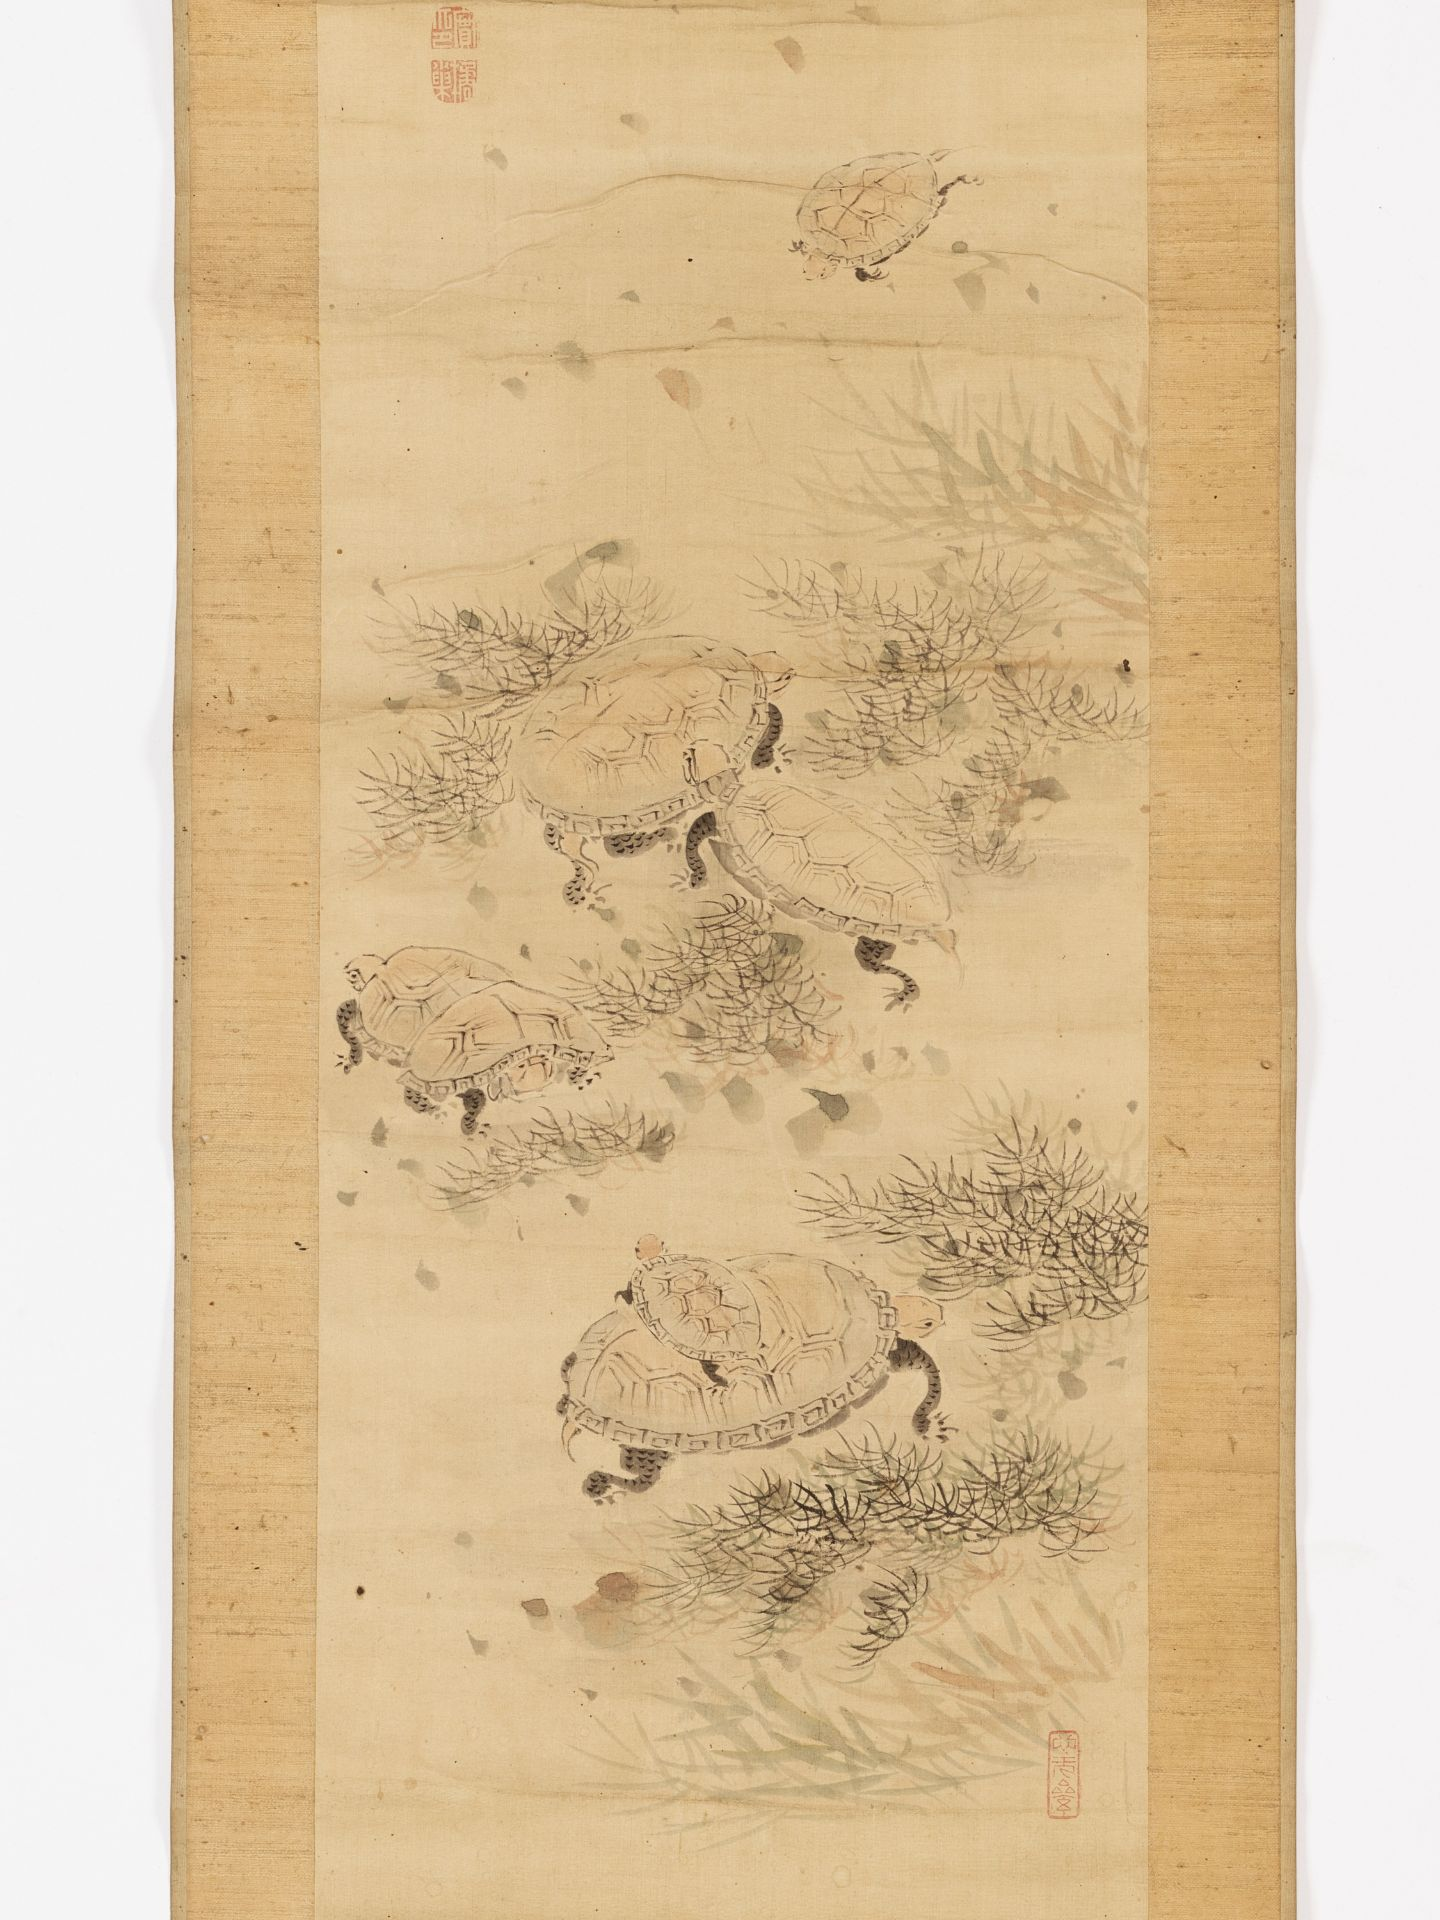 KISSO: A SCROLL PAINTING OF TURTLES